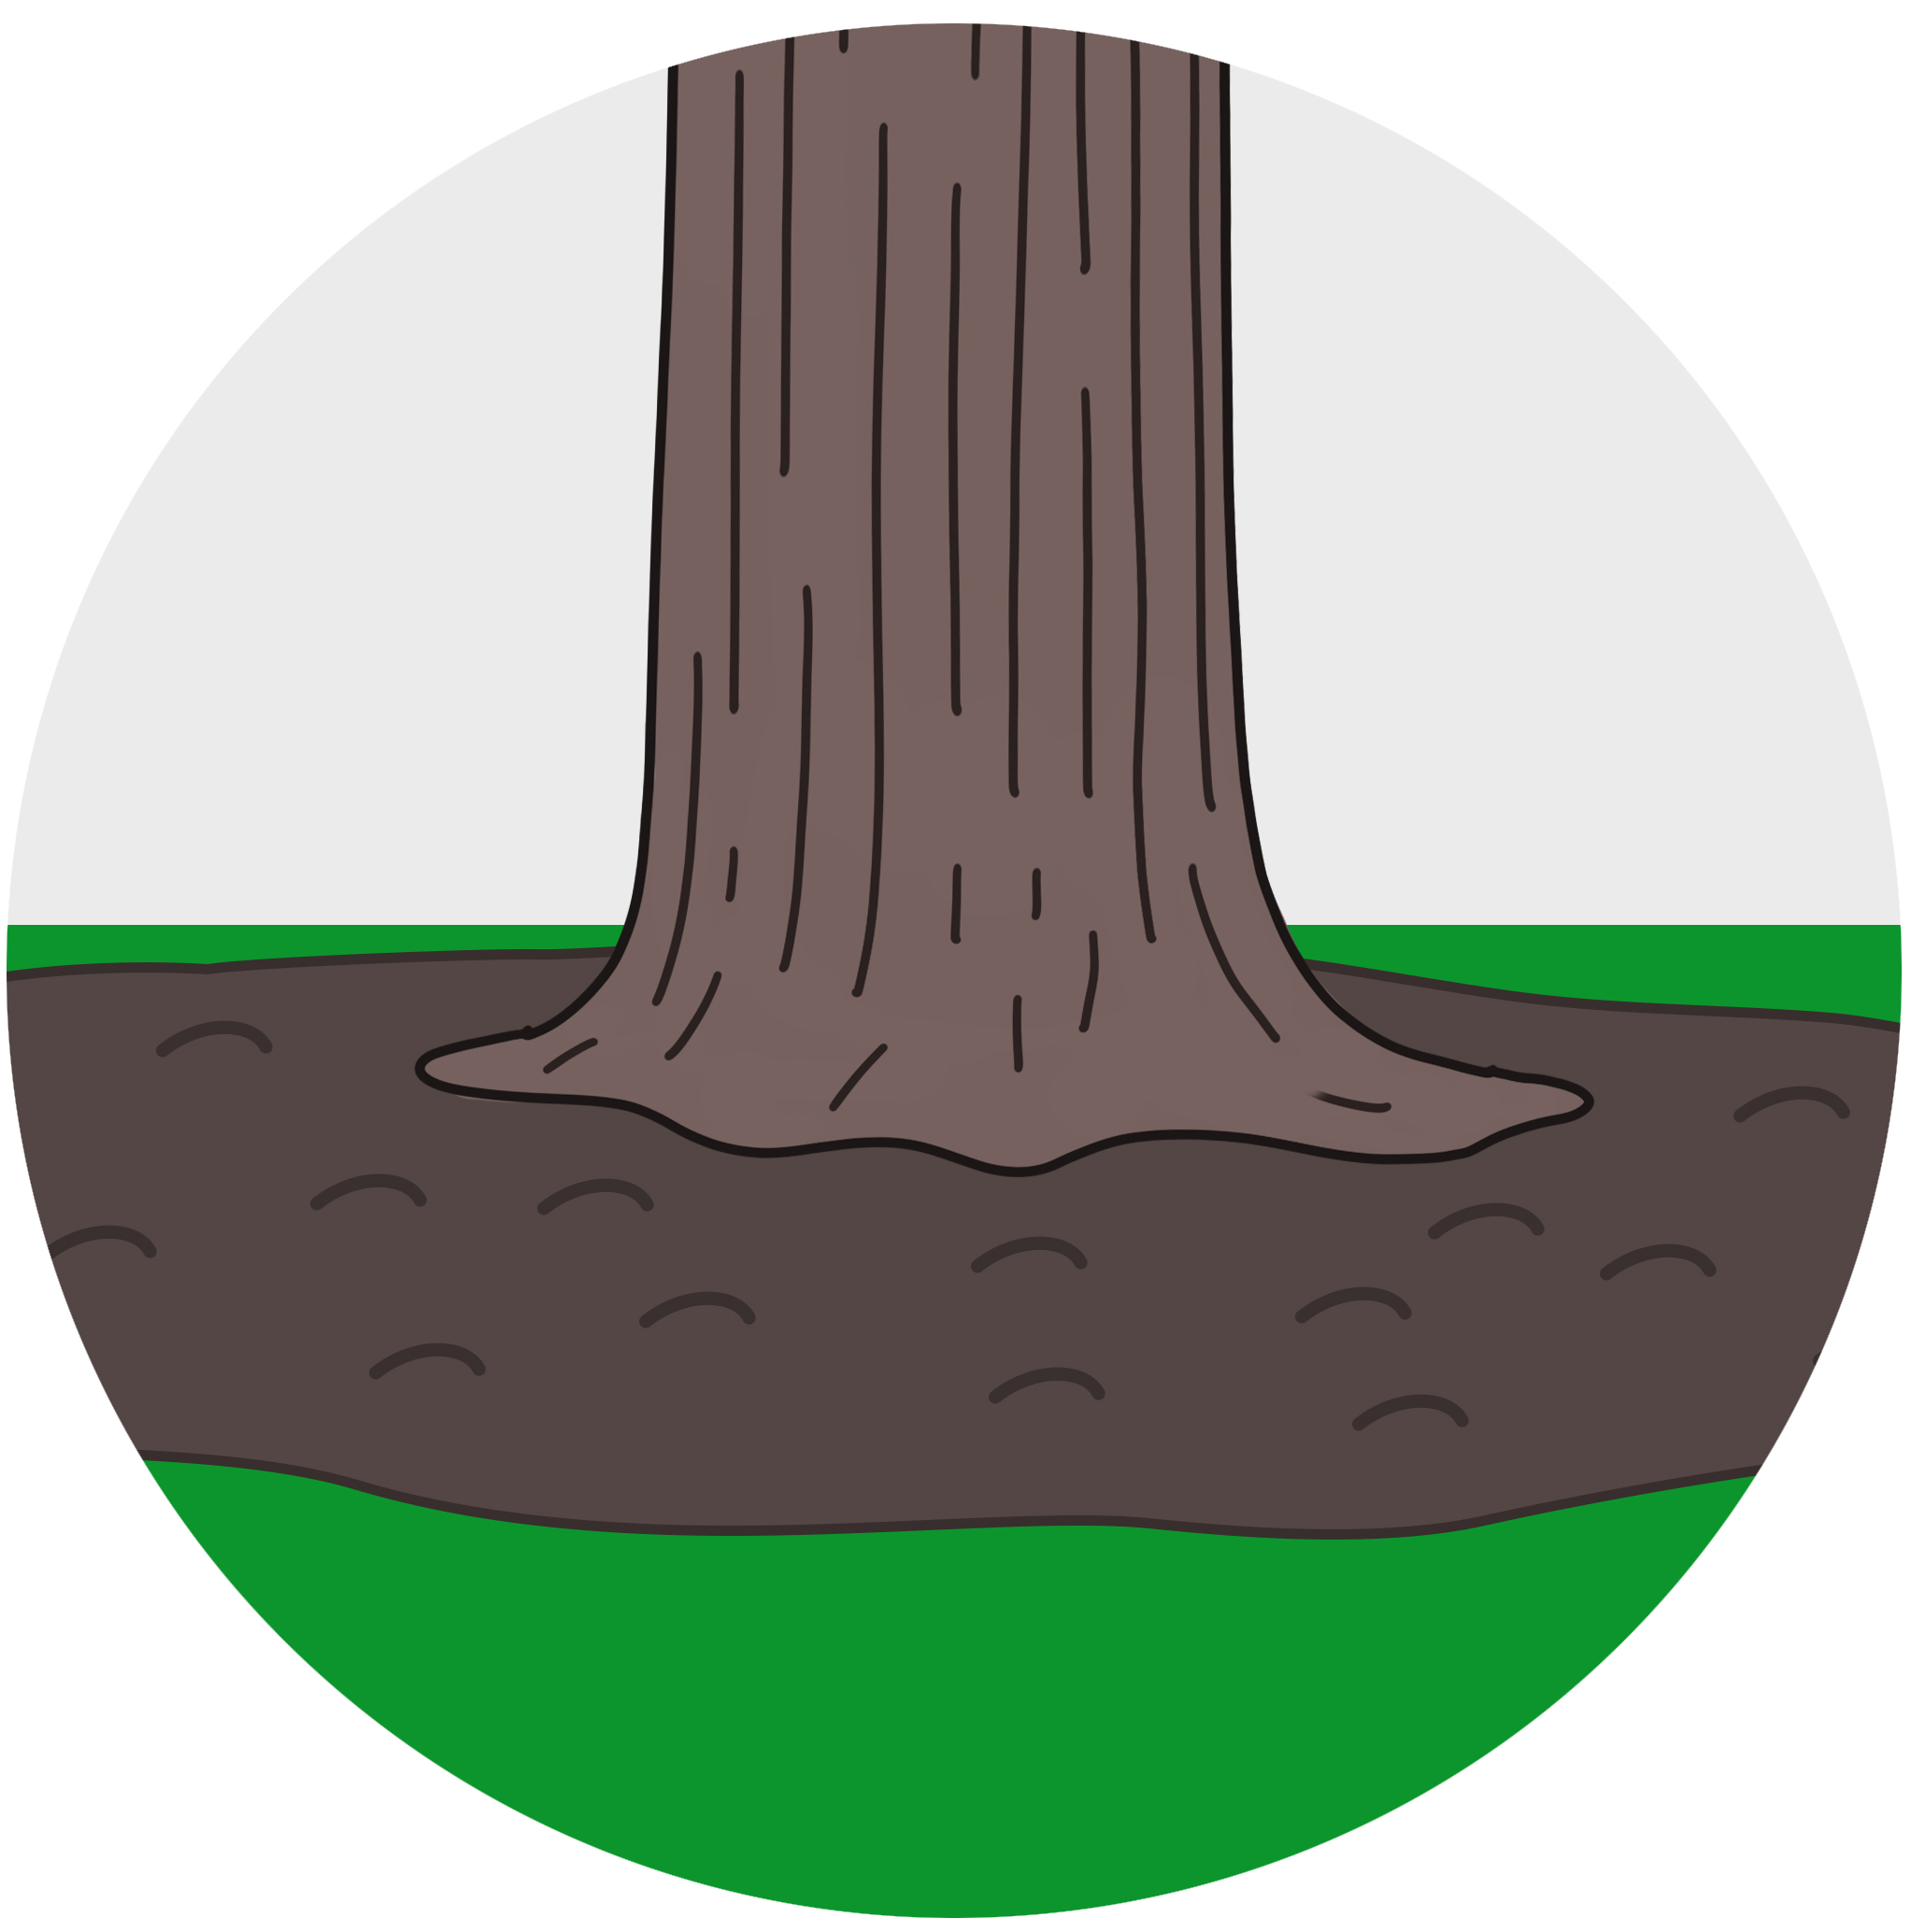 """STEp 4 - The root zone is then covered with composed mulch and voila! - the tree can """"breathe"""" again!"""